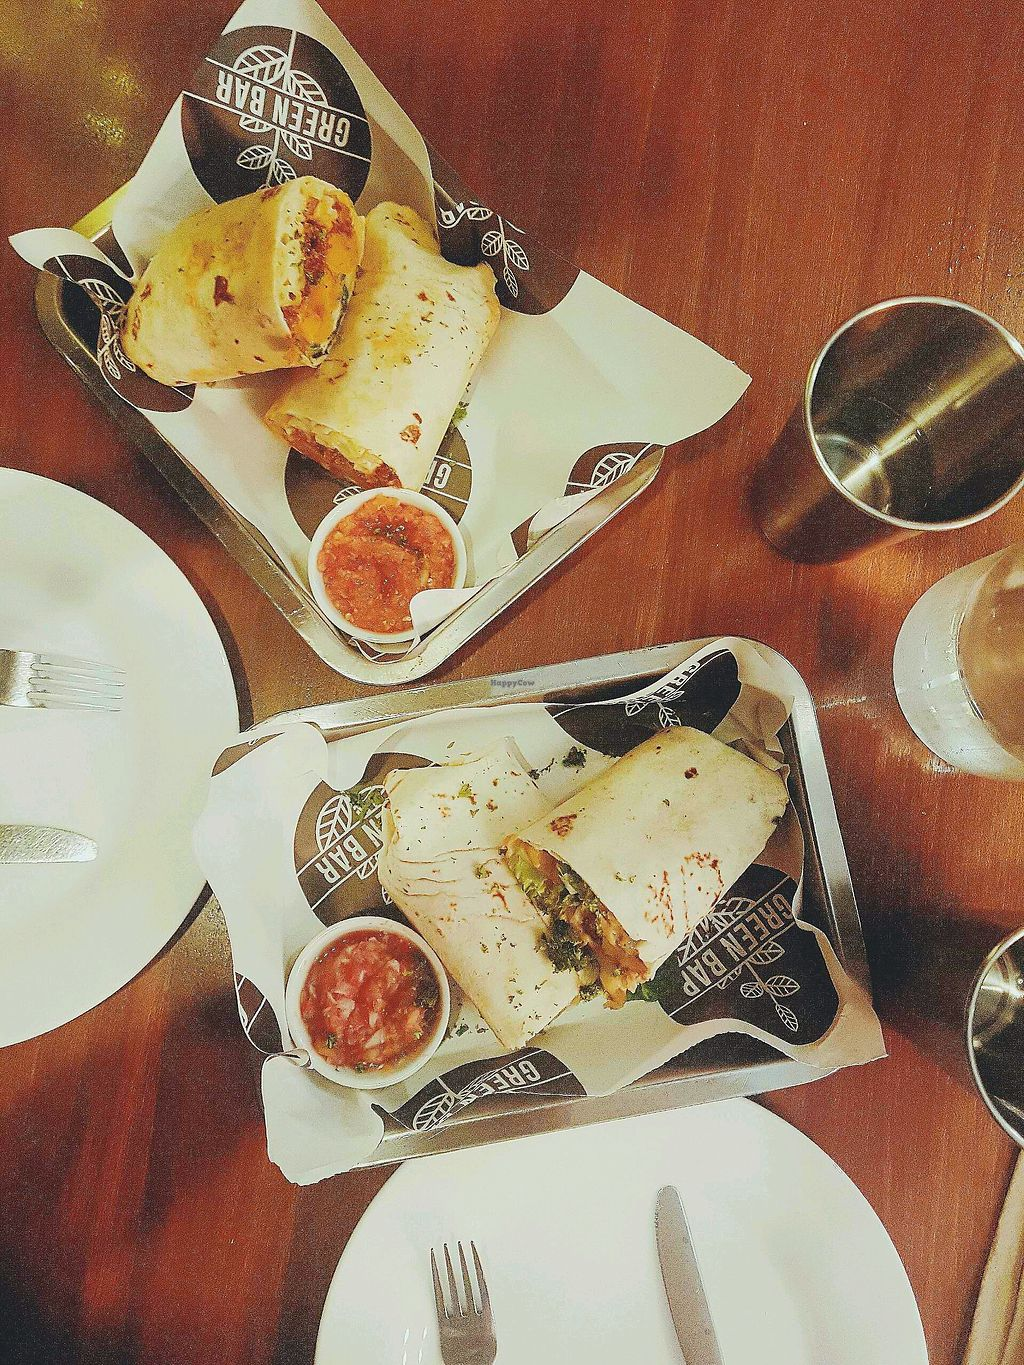 """Photo of Green Bar - Makati  by <a href=""""/members/profile/manilarm"""">manilarm</a> <br/>cheesy mac cracklin burrito <br/> April 22, 2018  - <a href='/contact/abuse/image/68402/389405'>Report</a>"""